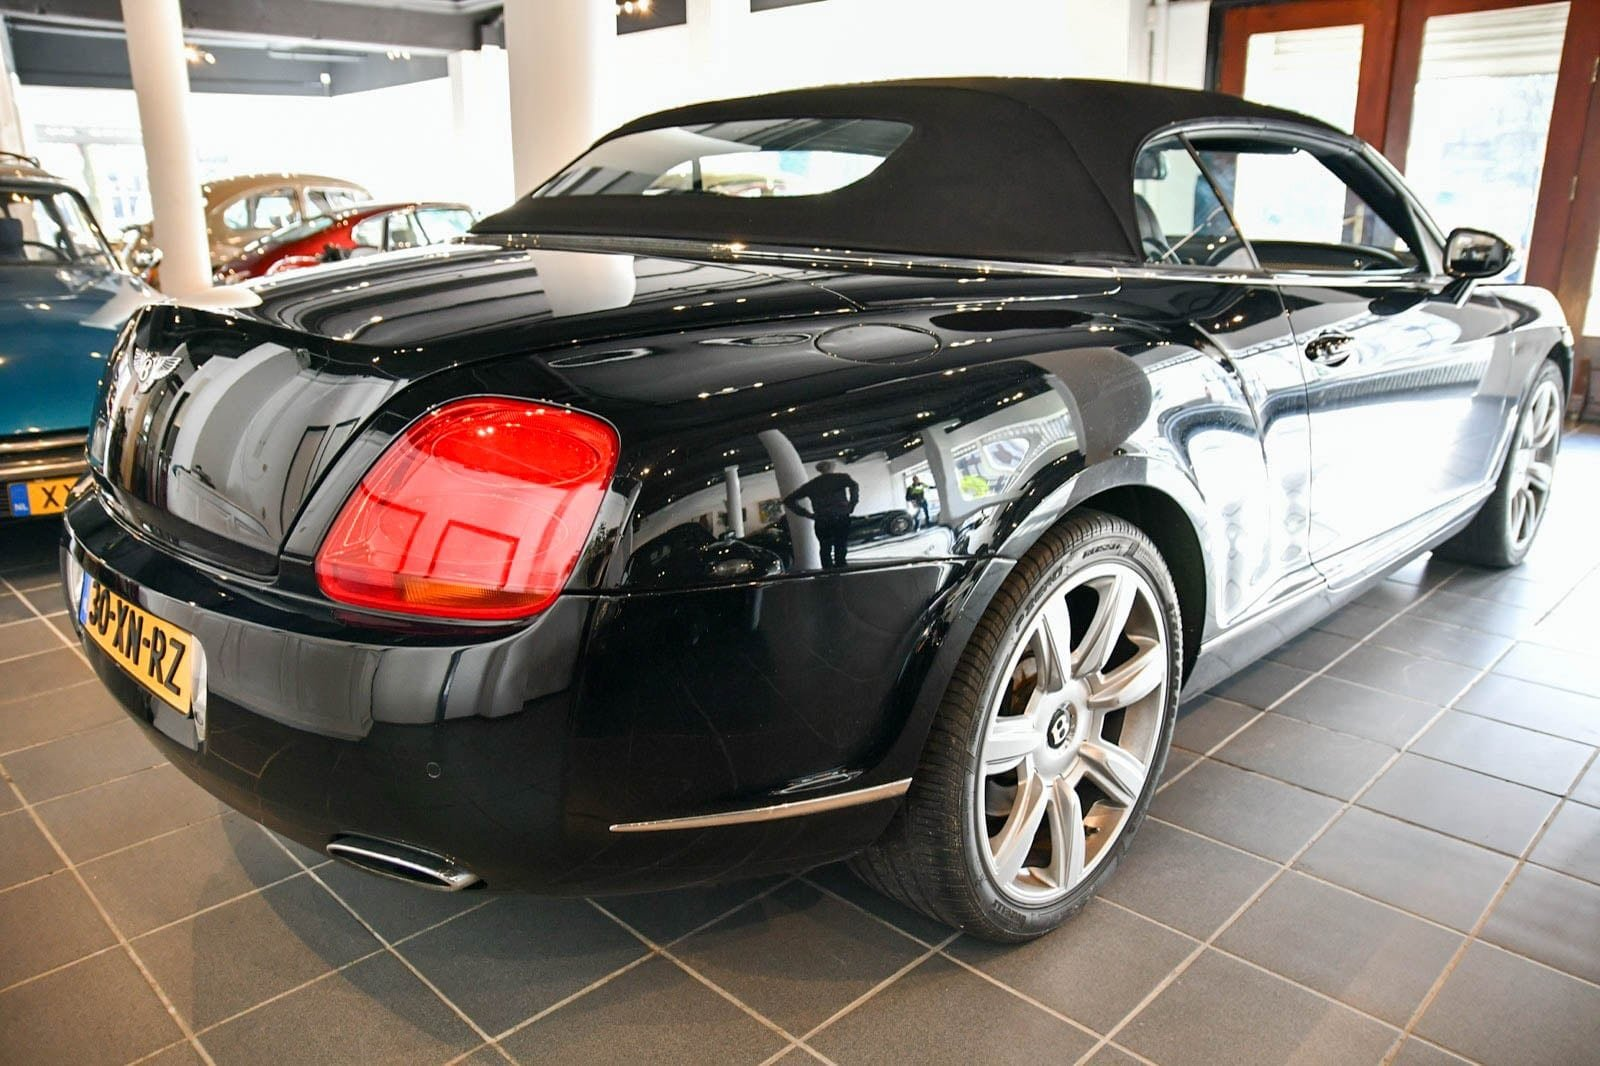 Bentley Continental GT 6.0 W12 GTC Convertible 2007 For Sale by Auction (picture 3 of 6)